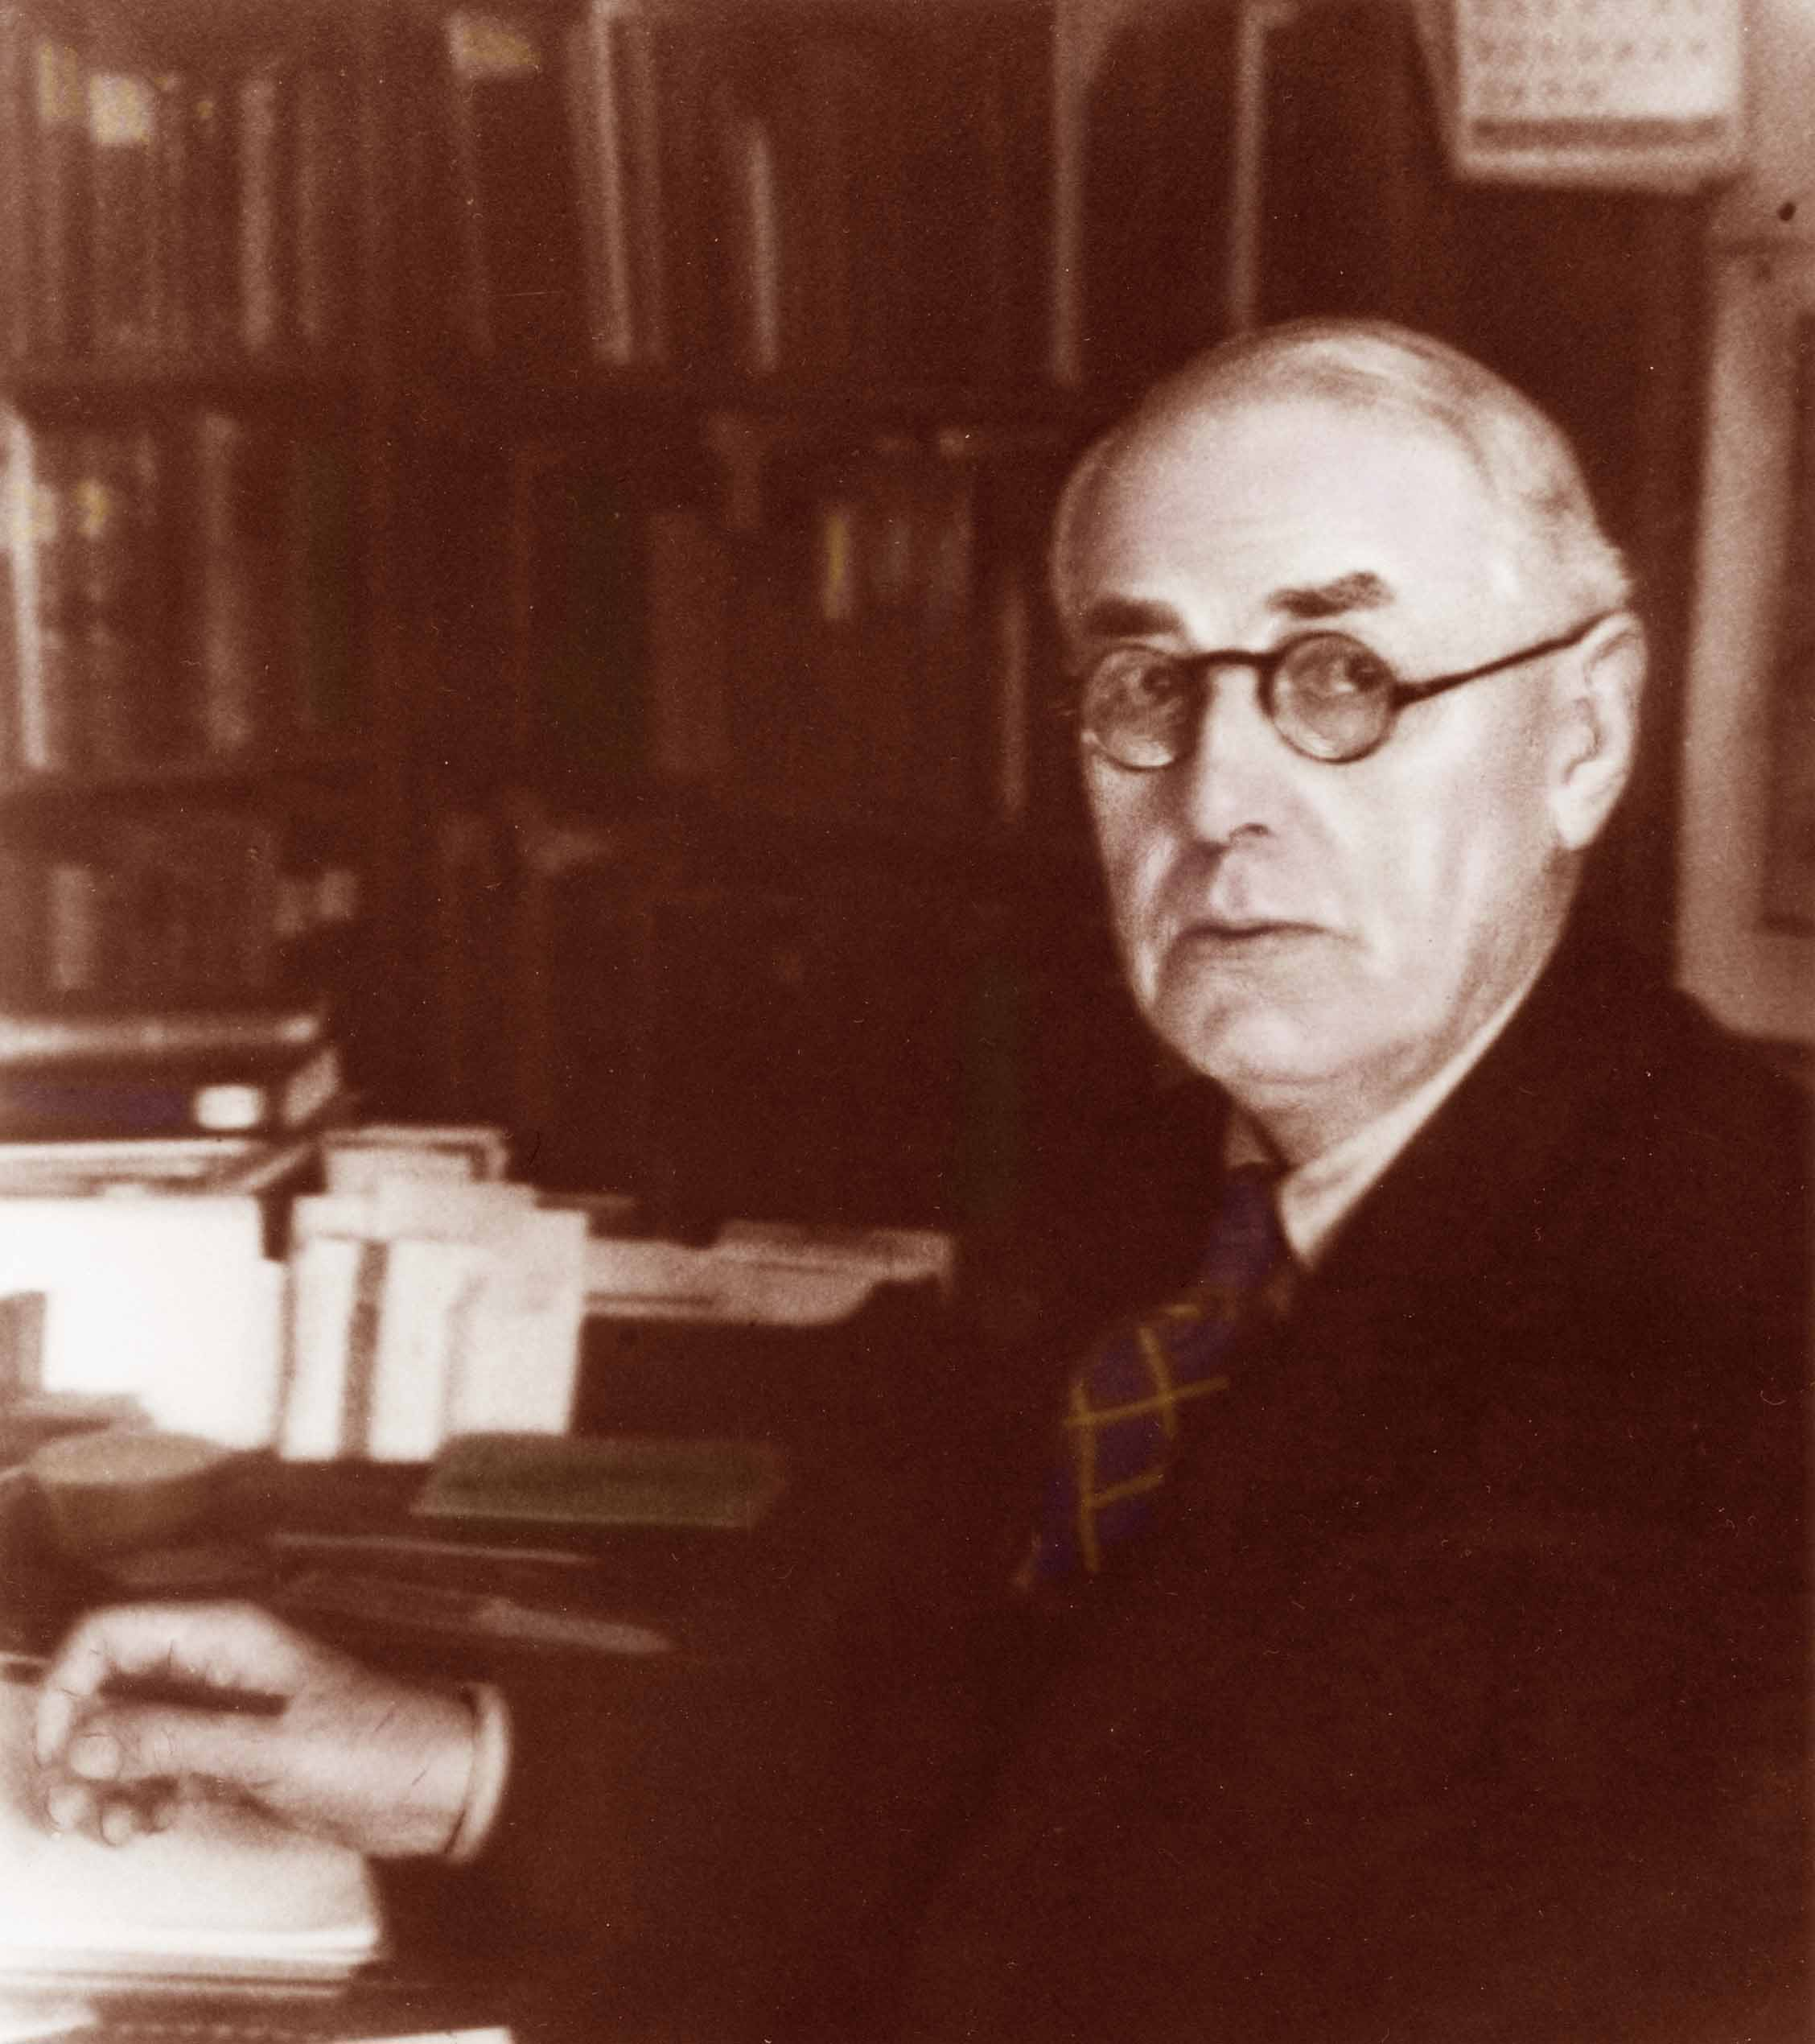 Frederick J. Teggart (1870-1946) founded the Department of Social Institutions, later called Sociology, at University of California, Berkeley.